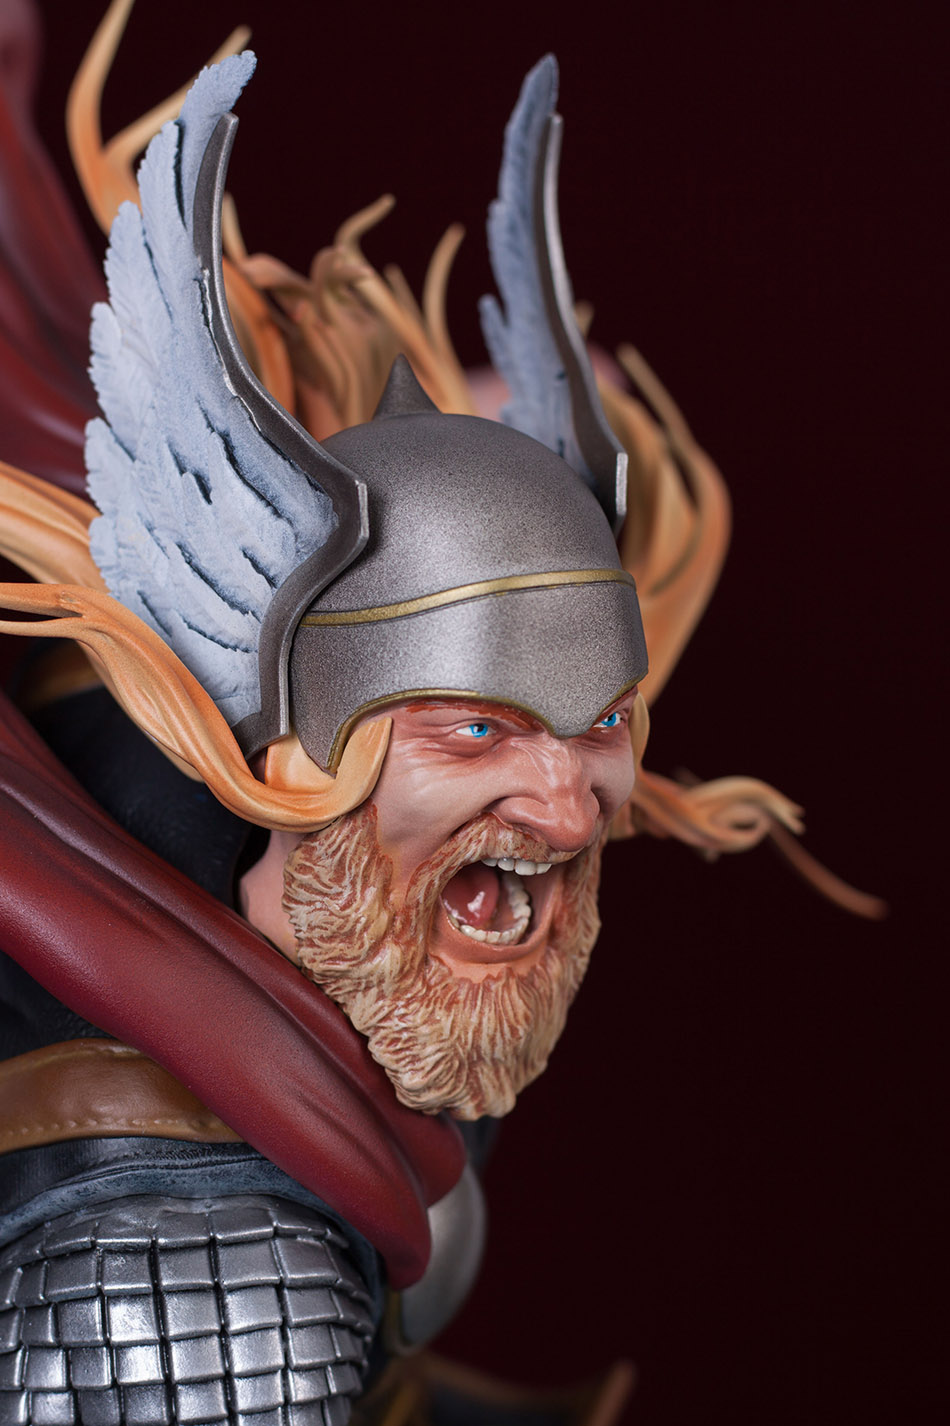 Statues et customs - Page 2 Thor_g32